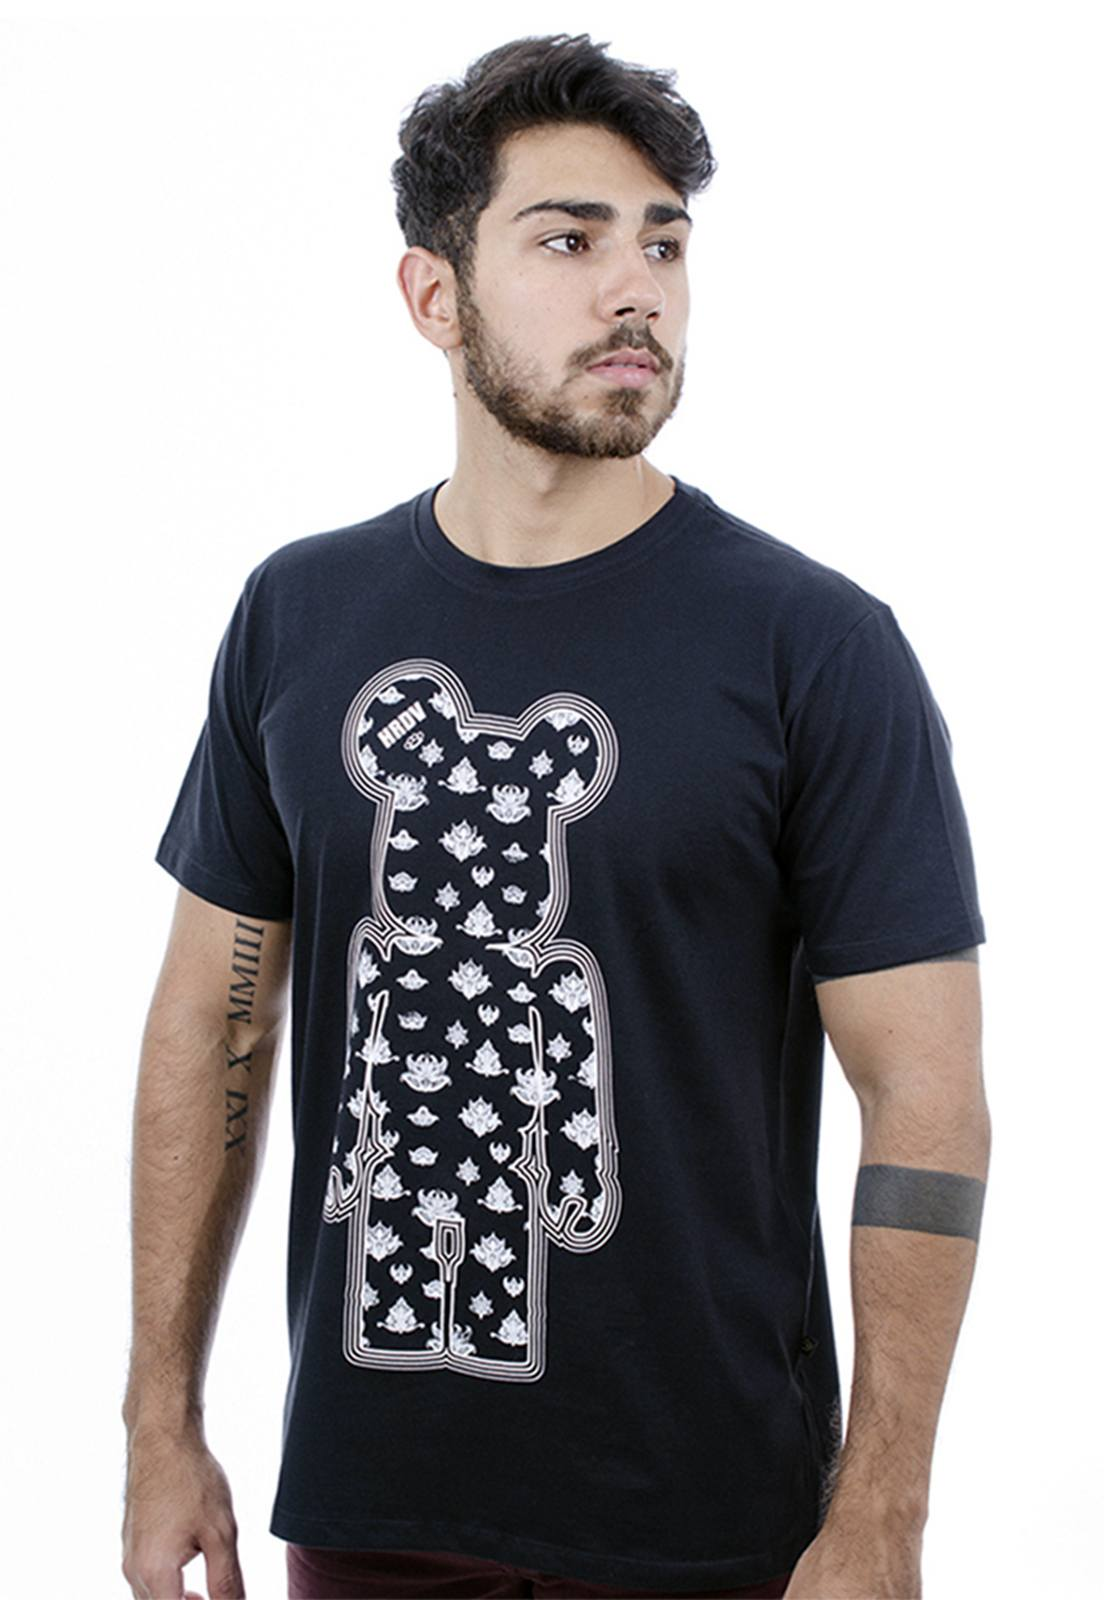 Camiseta Hardivision Indian Toy Art Manga Curta Preto